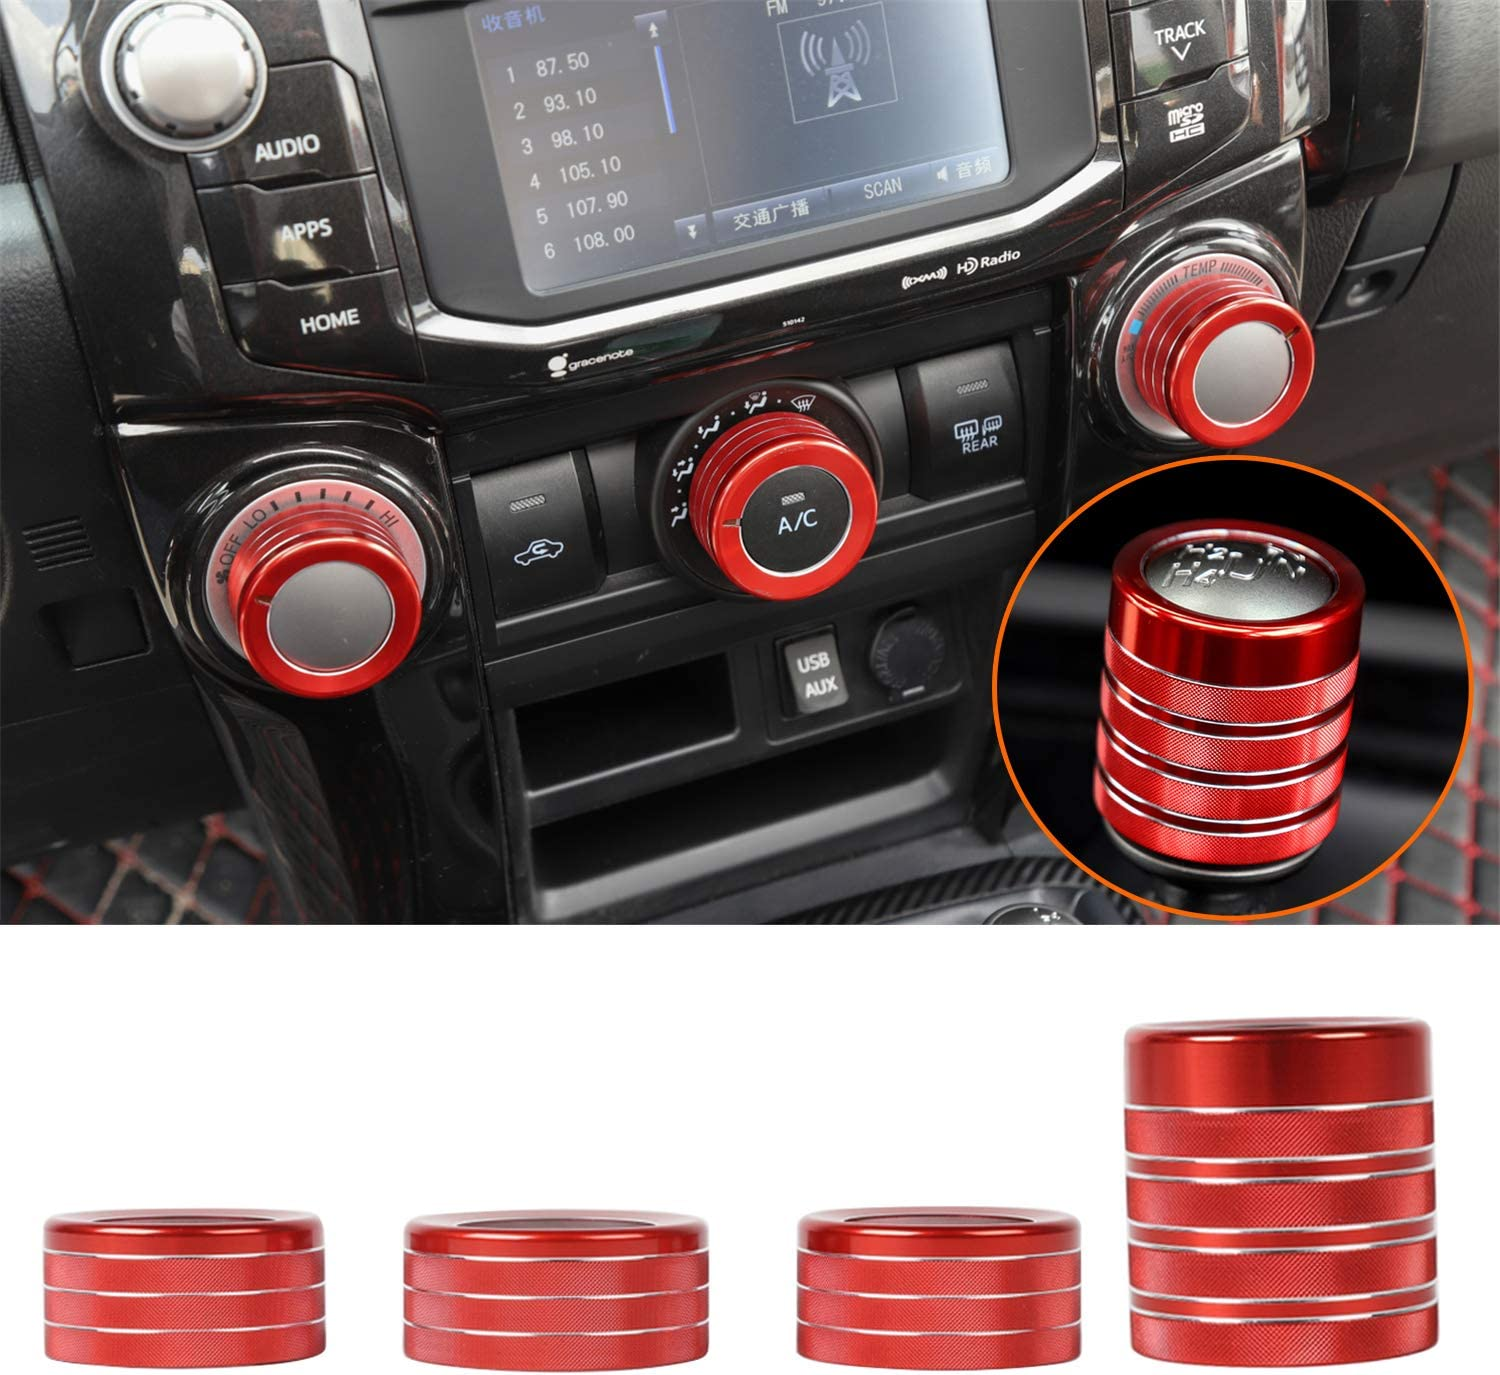 Red ZTYCKJ Gear Shifter Knob Stick Head Lever Cover Trim for Toyota 4Runner TRD Pro Offroad Car Styling Accessoies 2010-2019 2018